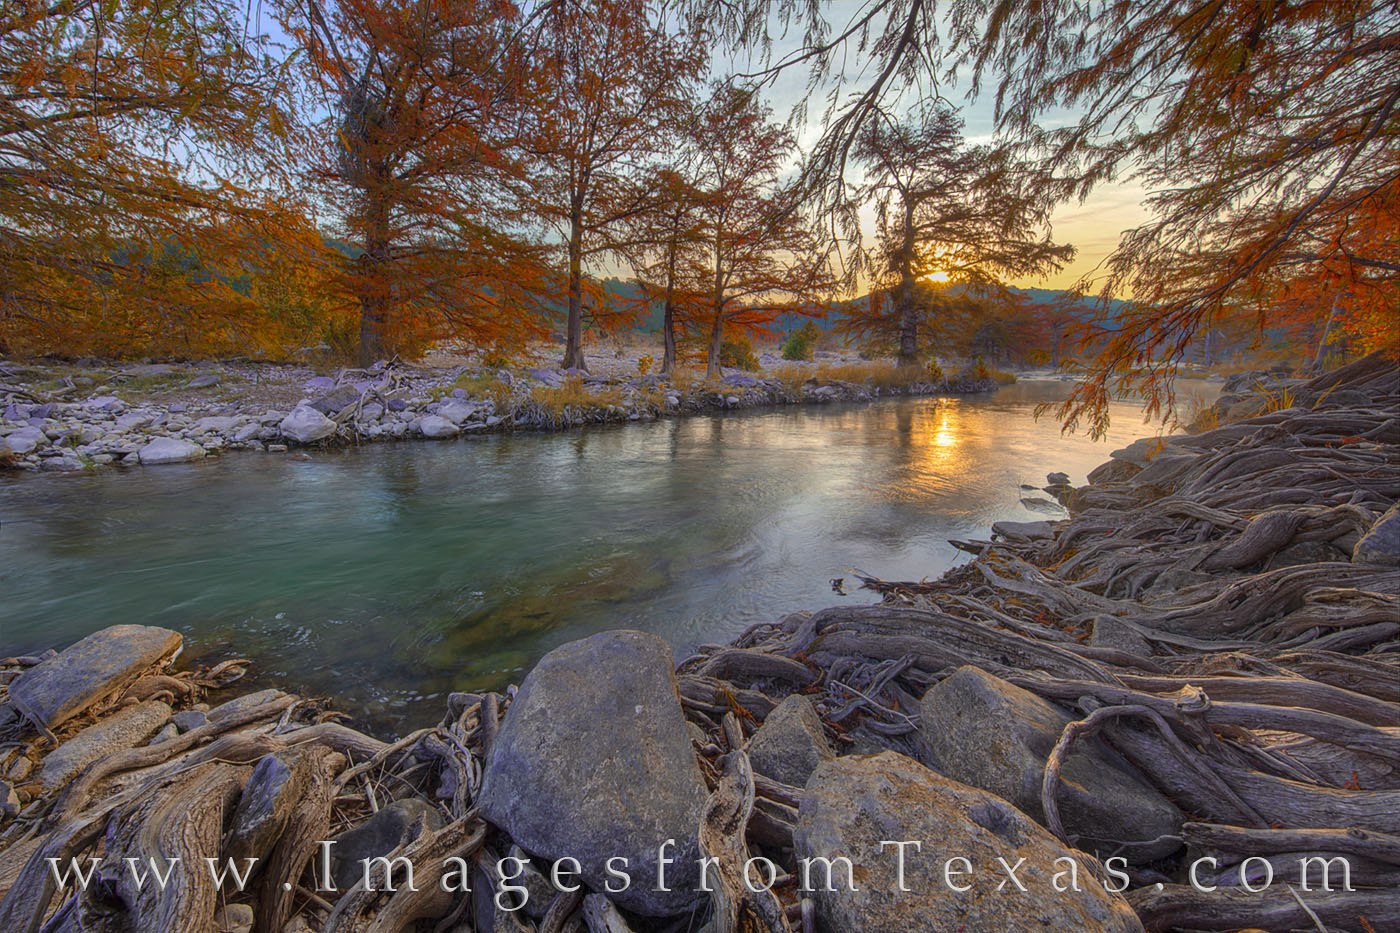 pedernales river, pedernales falls, state park, hill country, sunrise, cypress trees, fall colors, morning, photo